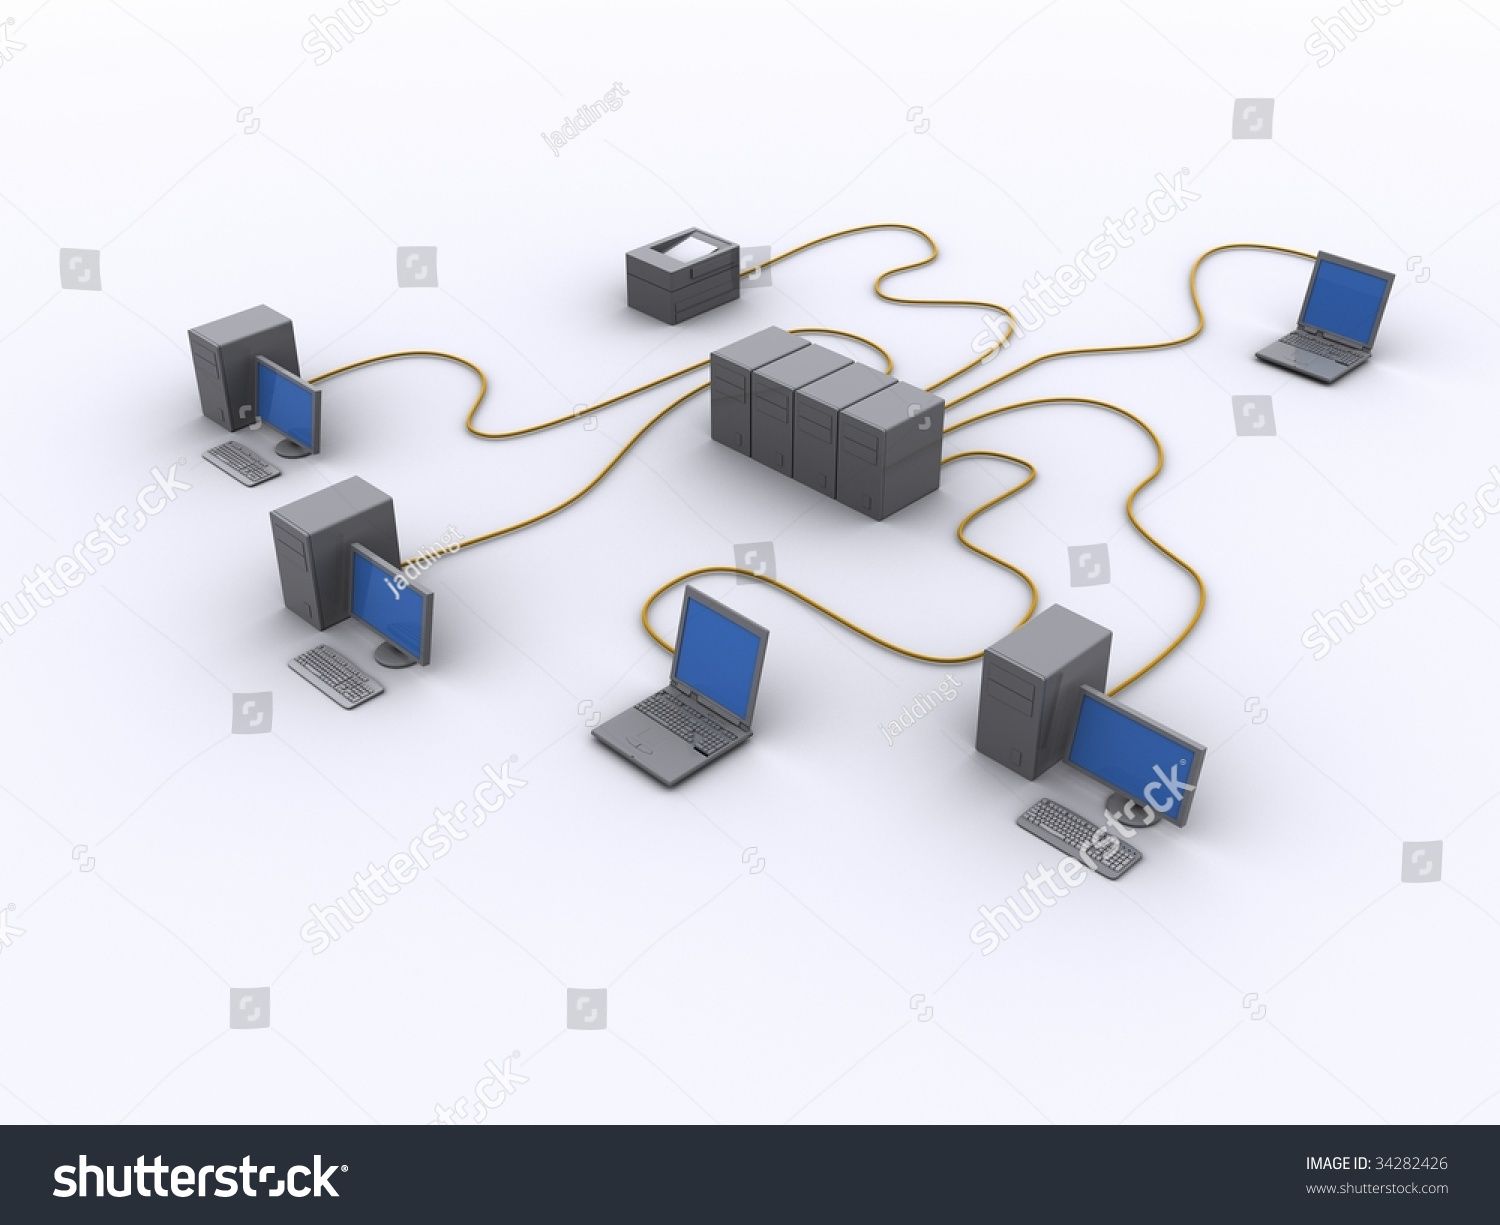 Picture Wired Network Diagram Stock Illustration 34282426 - Shutterstock